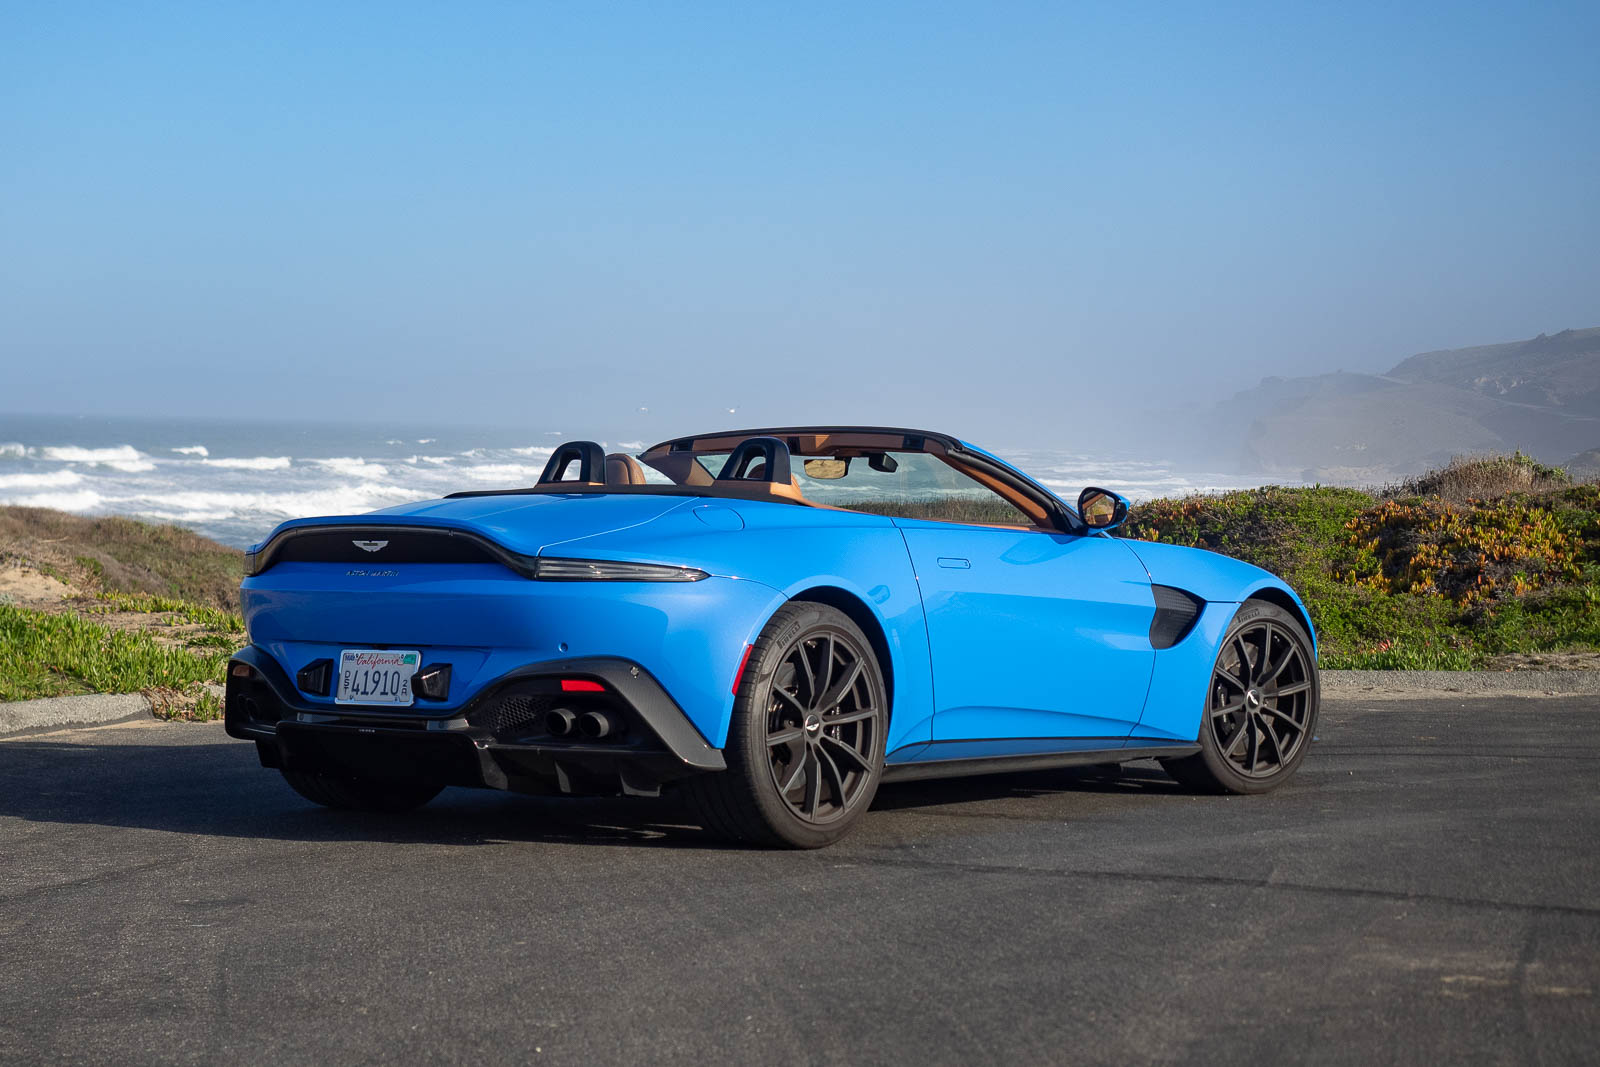 2021 Aston Martin Vantage Roadster rear 3/4 view in ceramic blue at coast